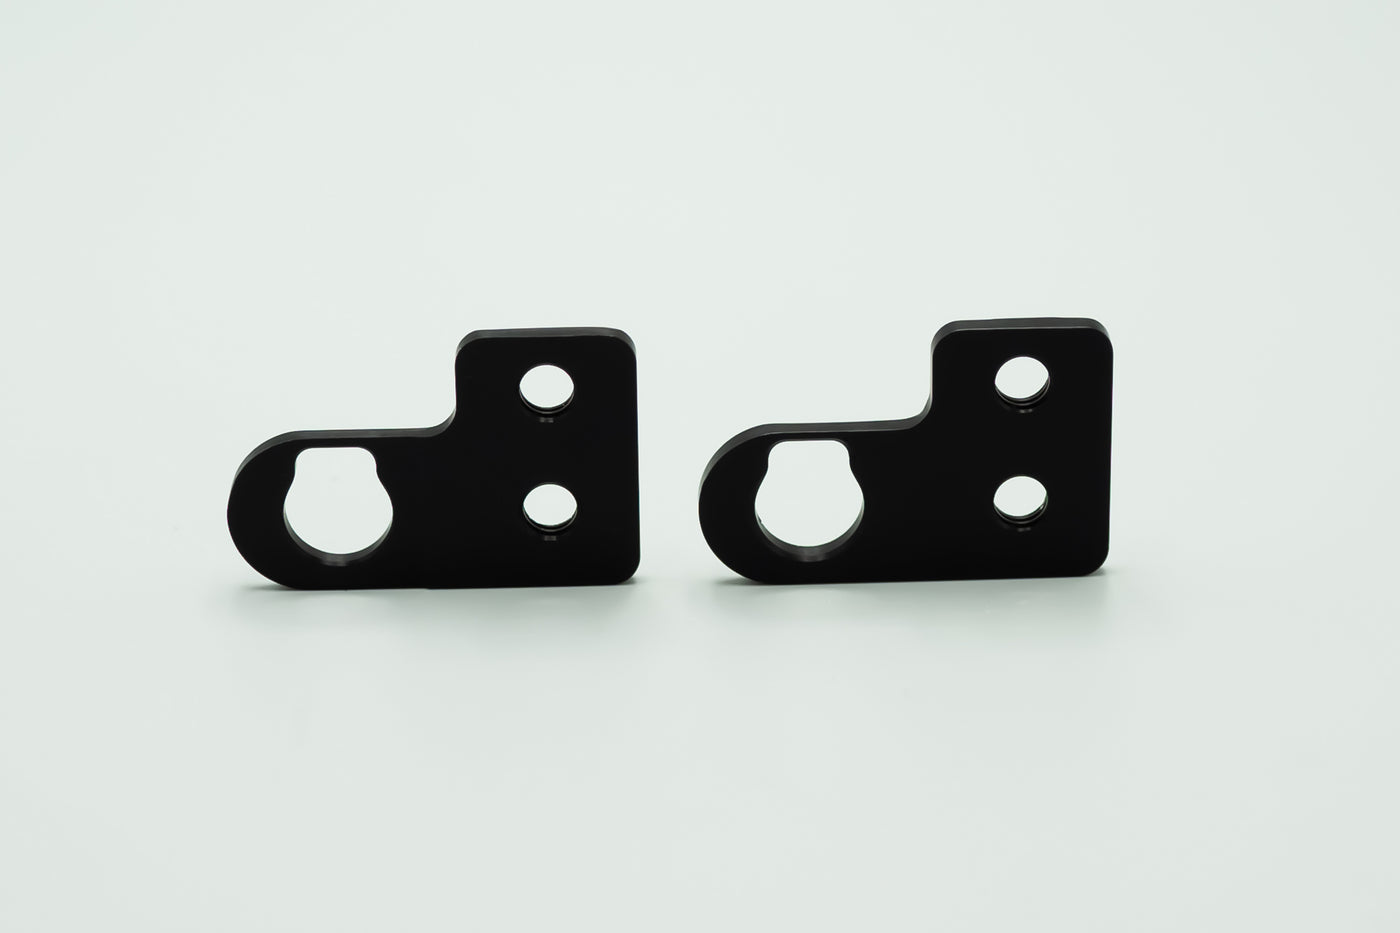 OEM signal adapters for the Daedalus Tail Tidy | BMW R nineT